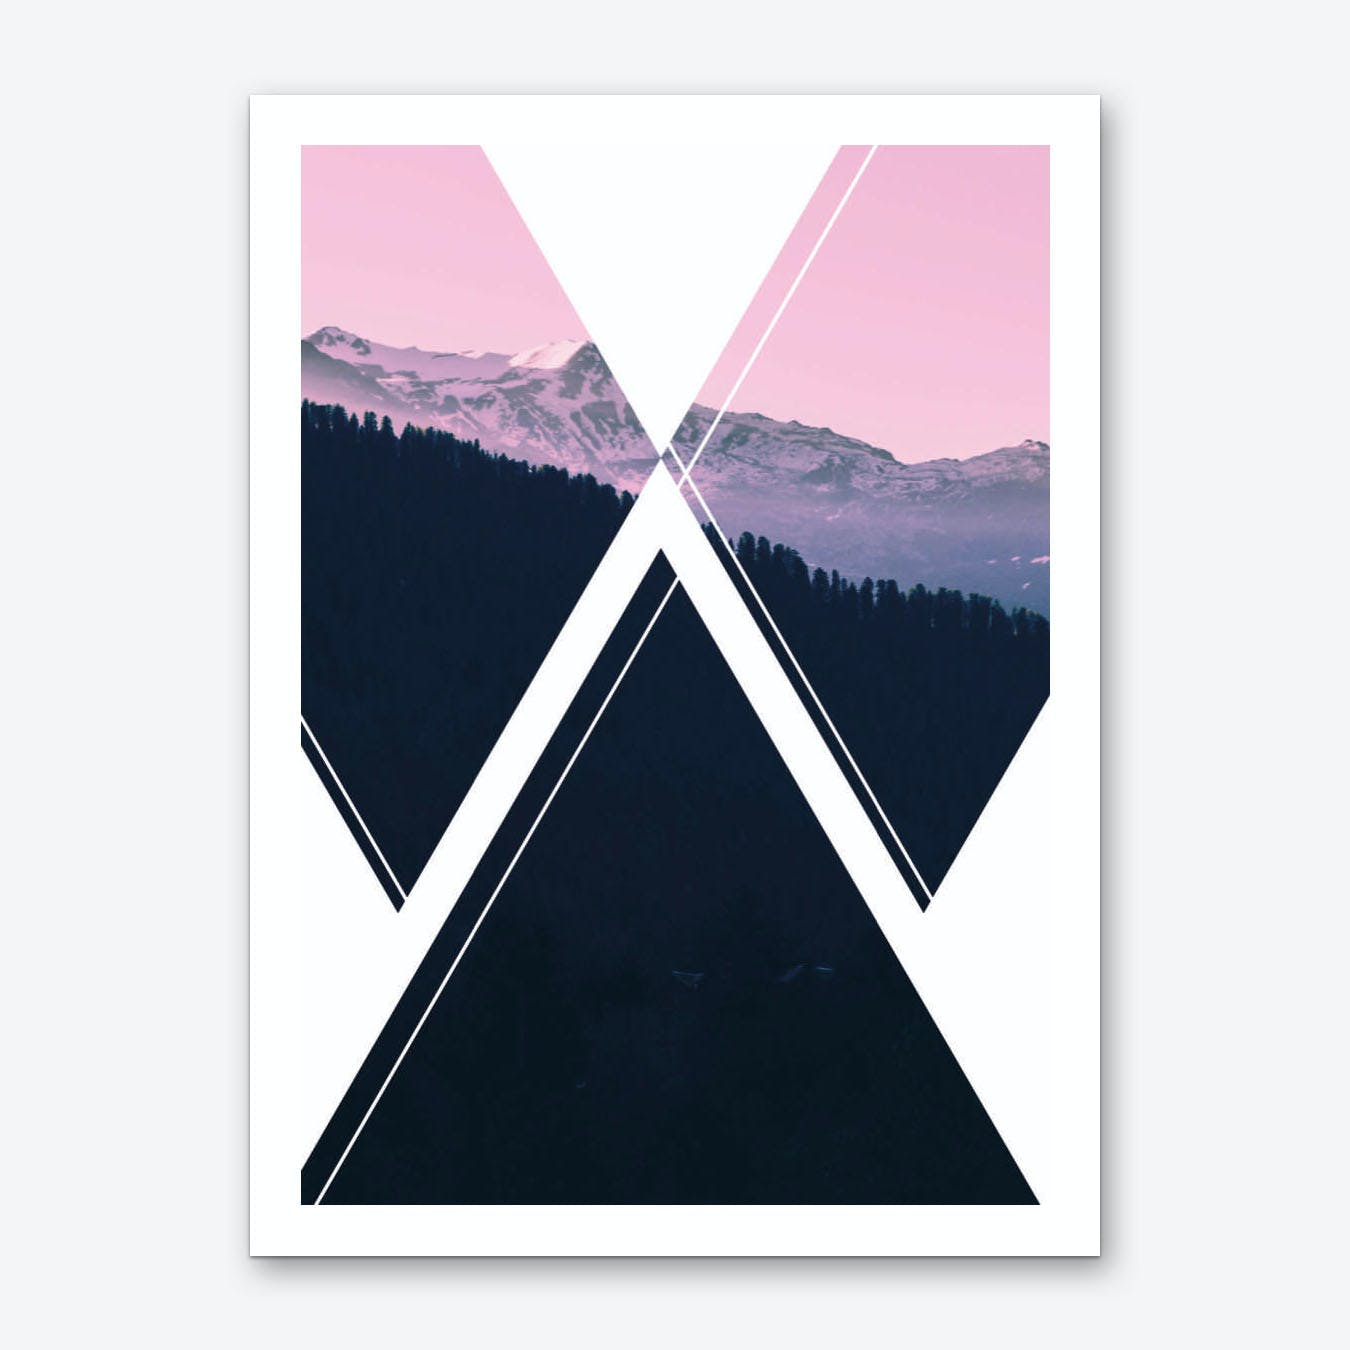 Abstract Pink and Black Mountain Art Print